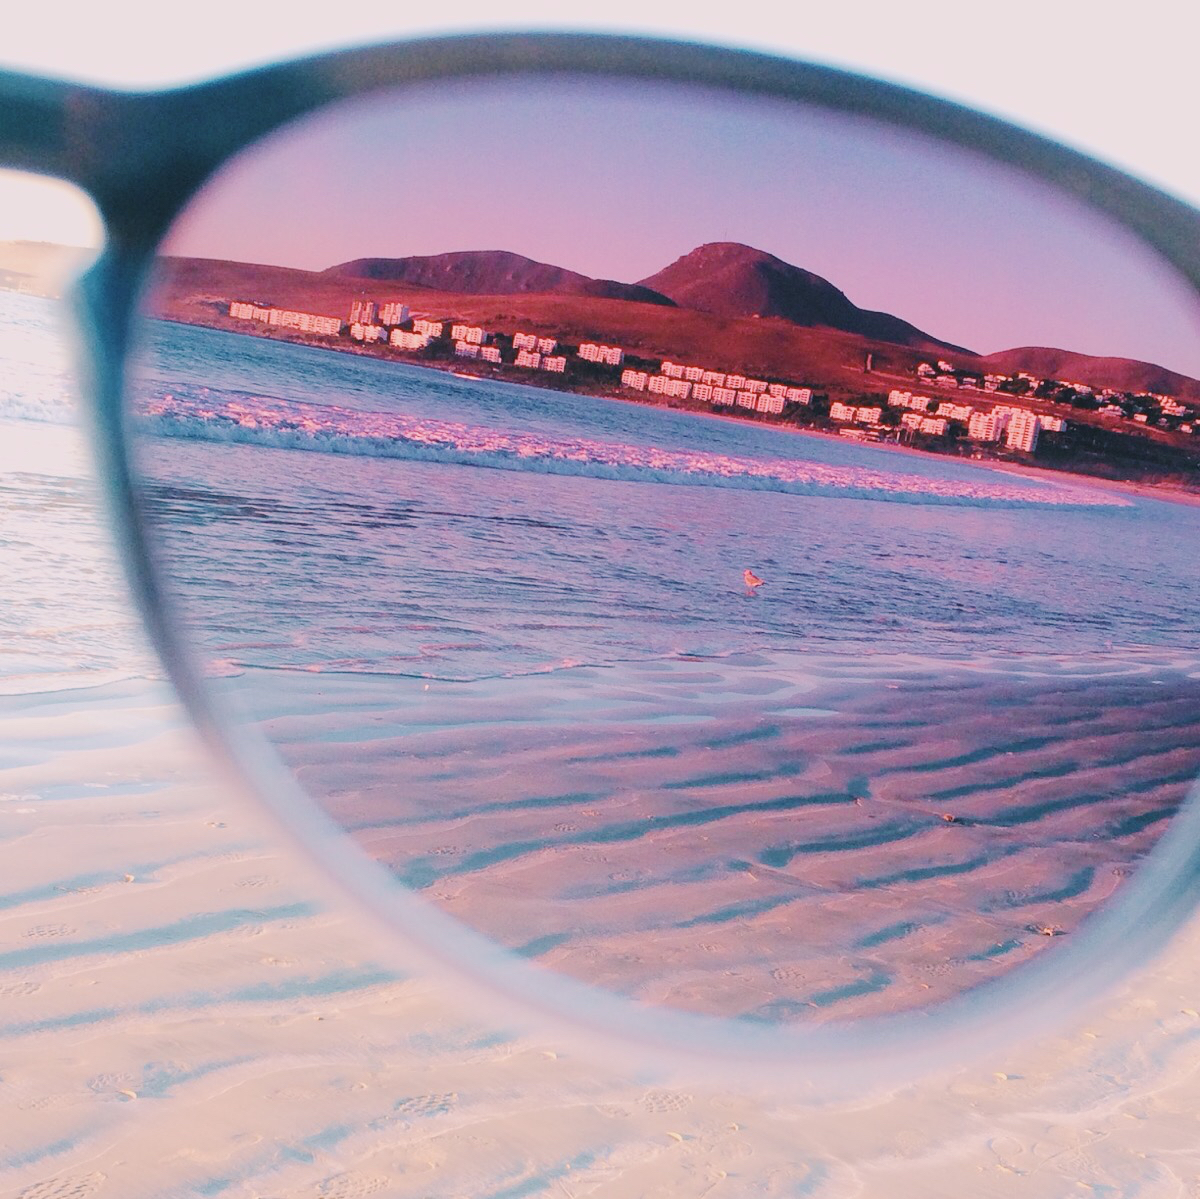 beach, chile, city, cool, fashion, glasses, hq, landscape, love, nature, pastel, pink, pinky, sand, sky, summer, tropical, view, wallpaper